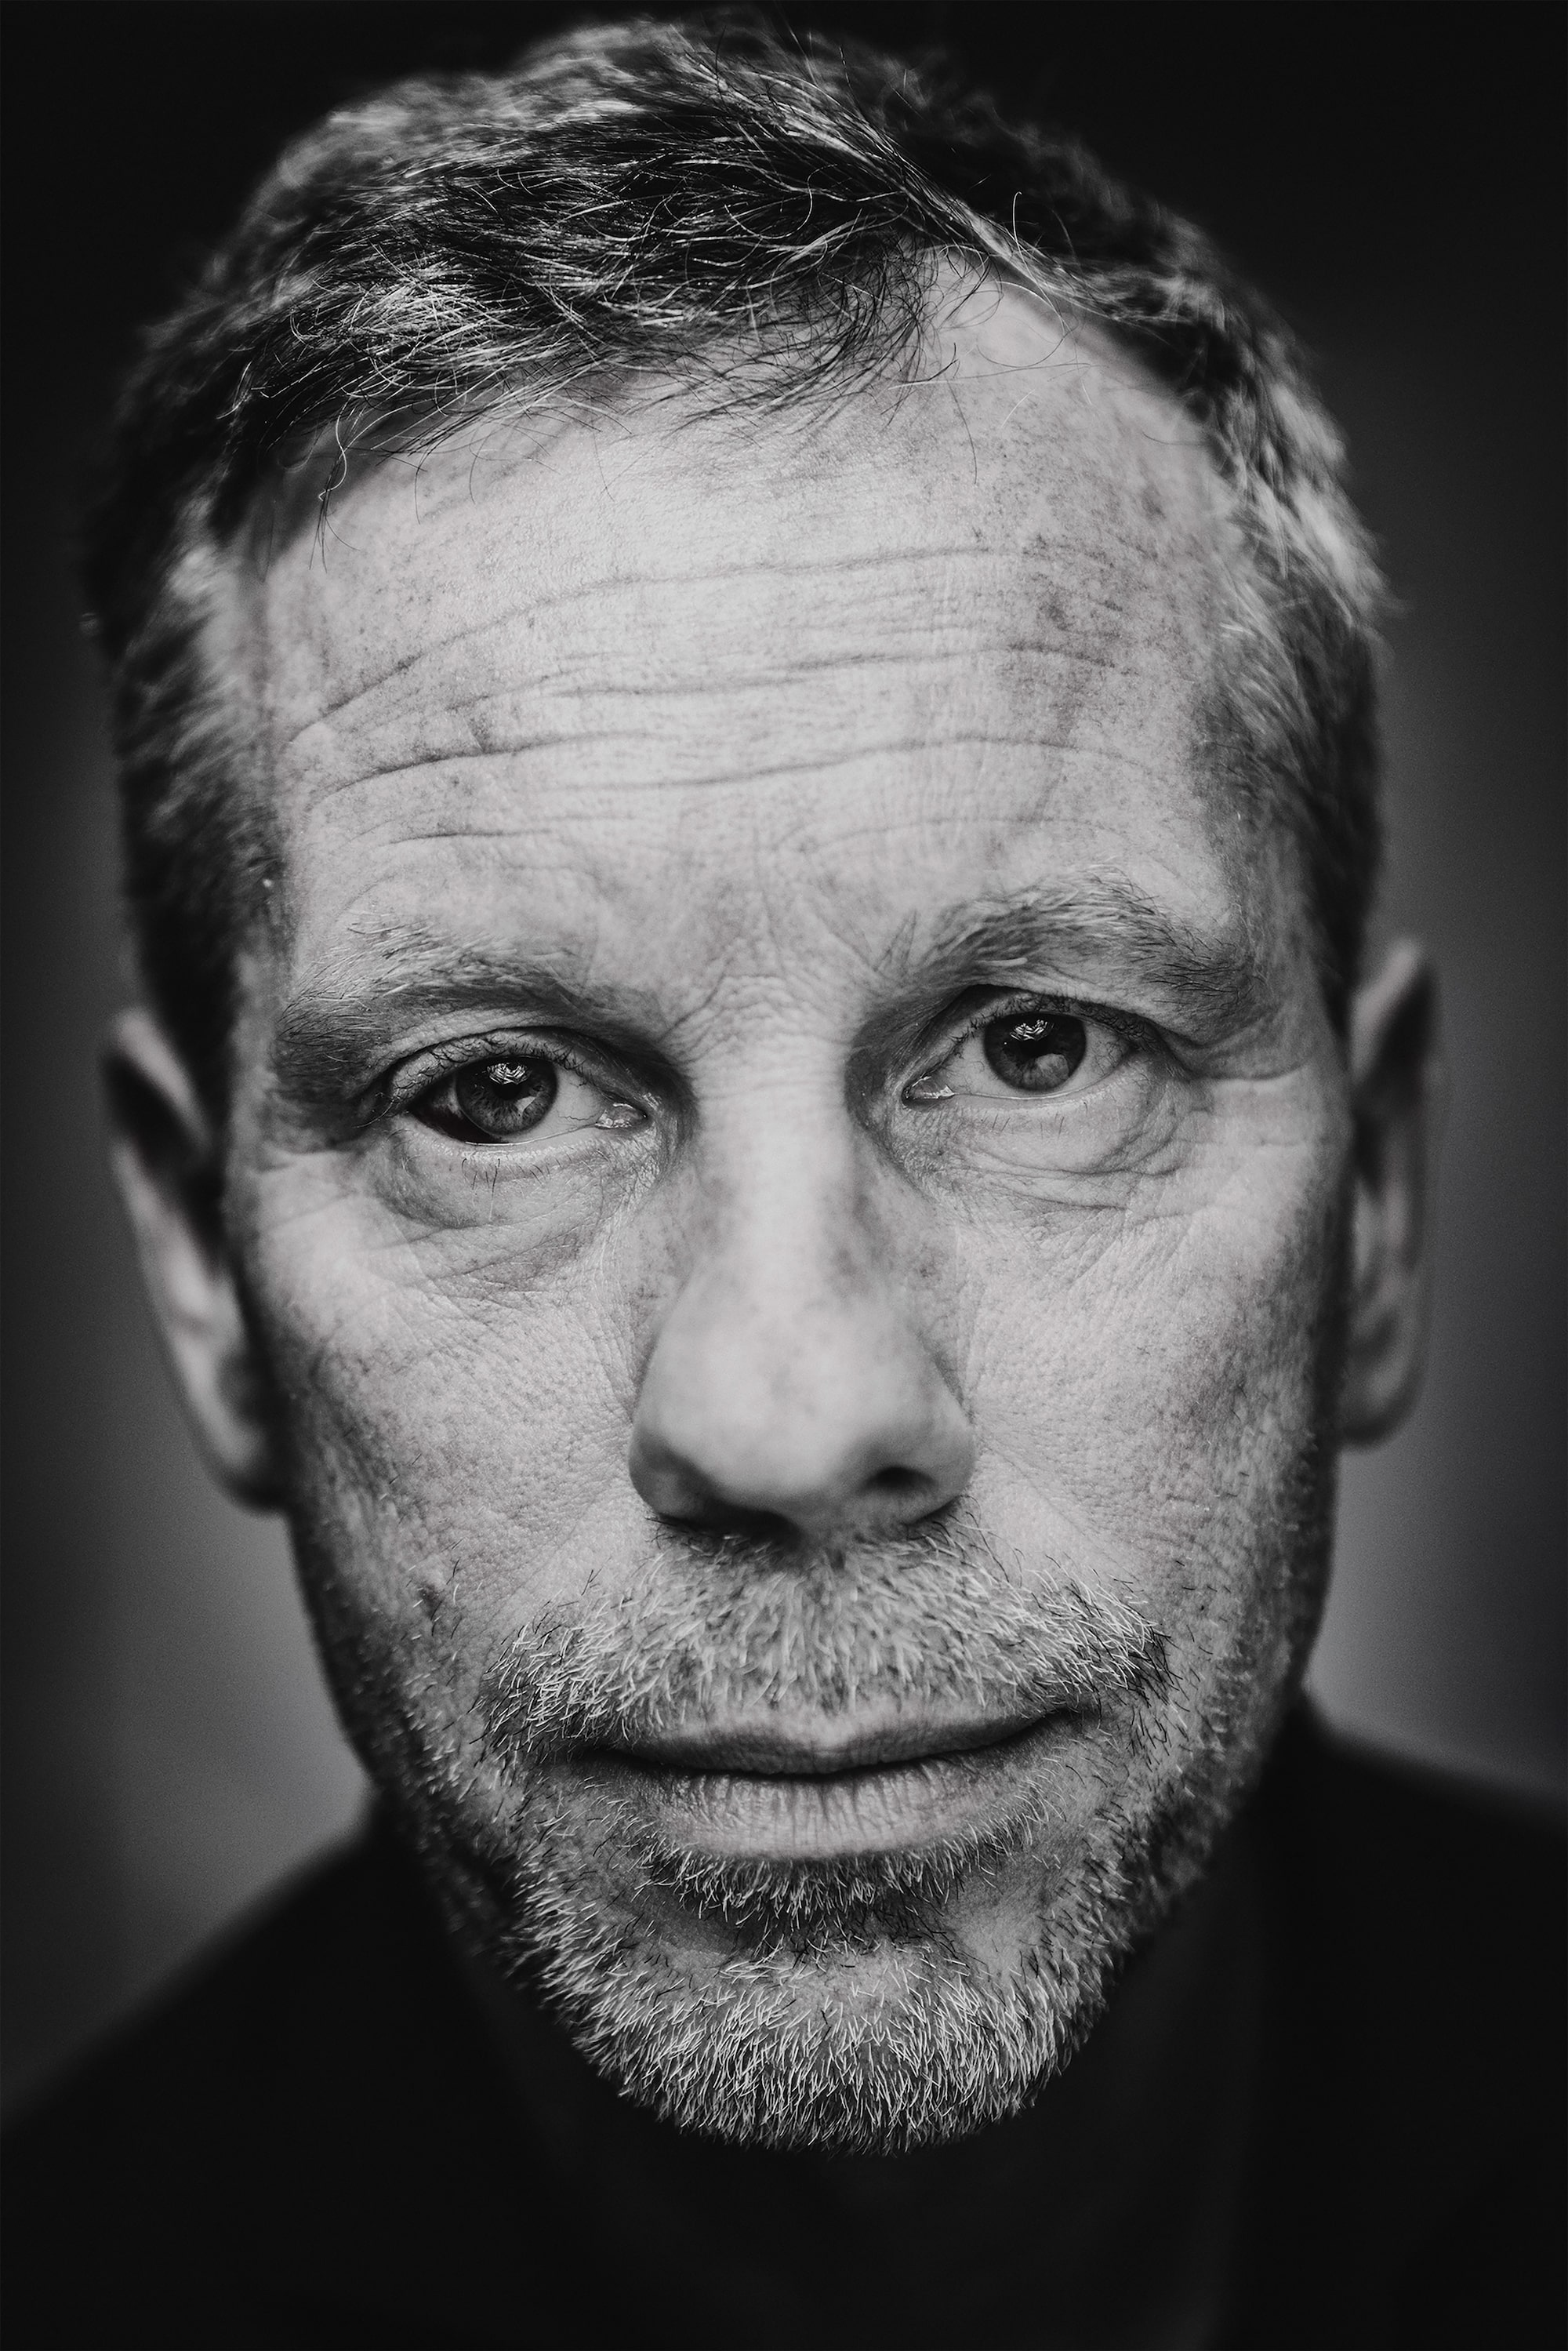 brendan de clercq sony alpha 7RM3 portrait of an unshaven man wearing a black rollneck jumper